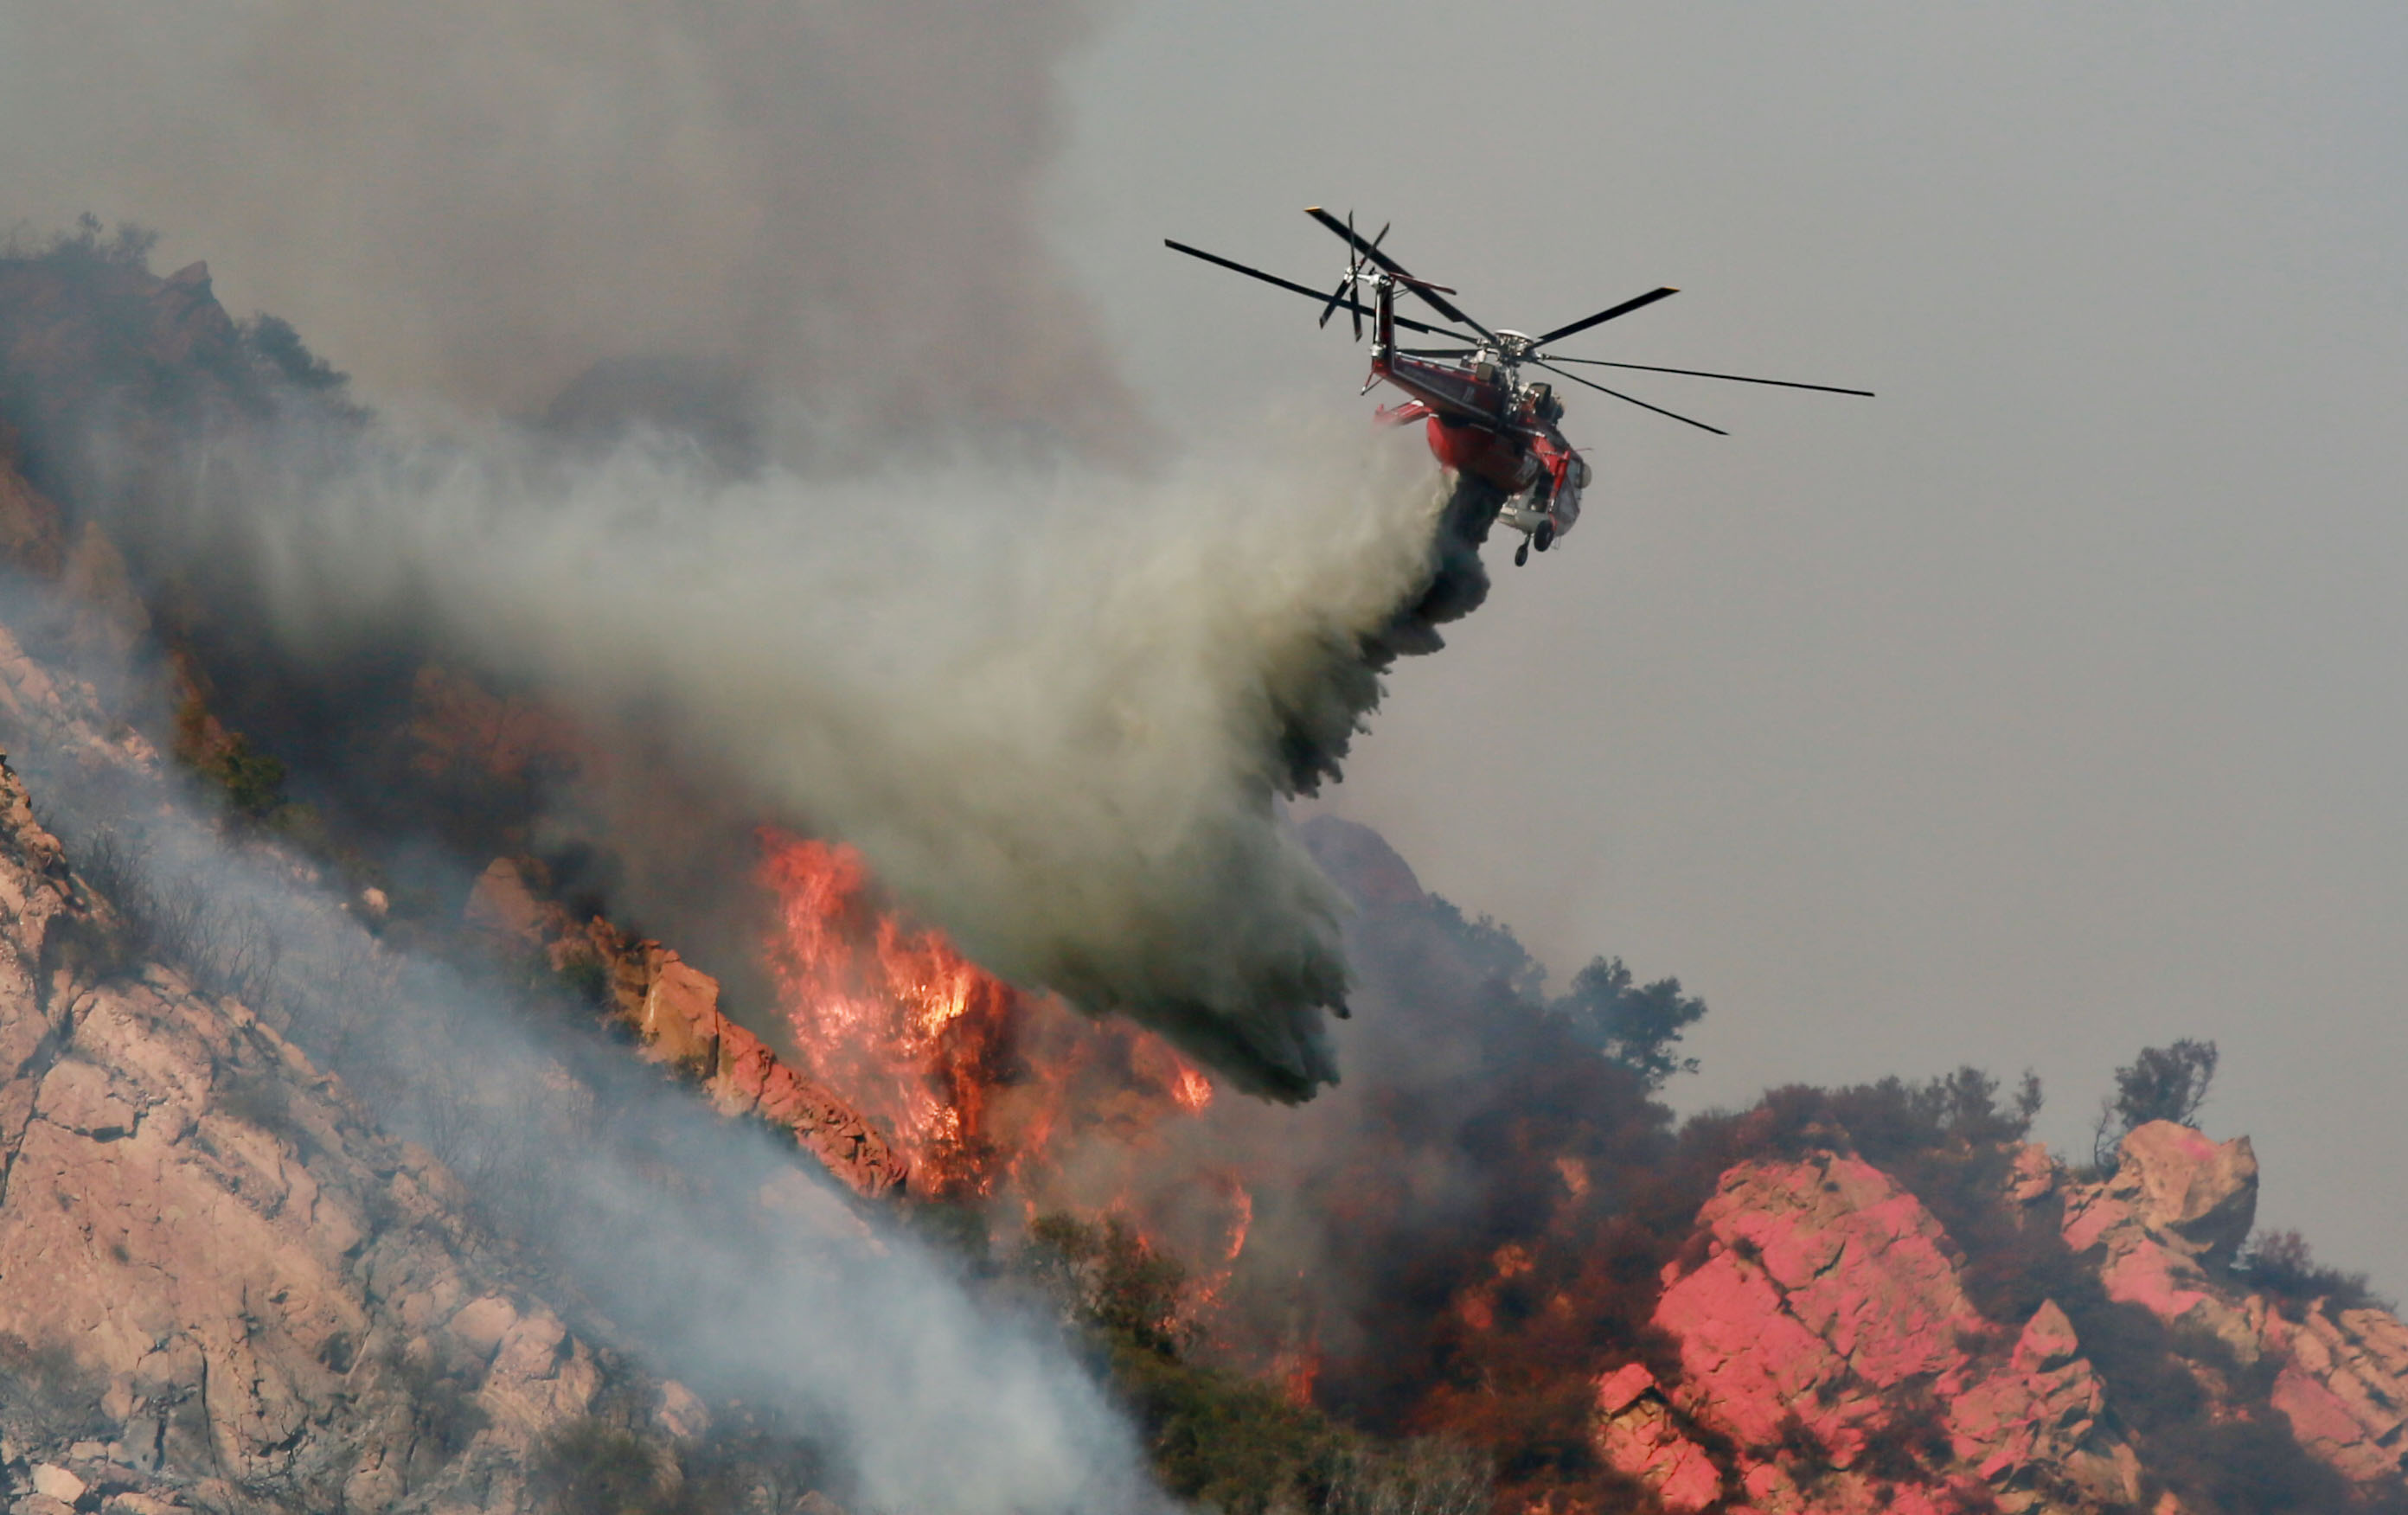 A helicopter drops flame retardant on a wildfire on November 10, 2018, in Malibu, California. (Getty Images)